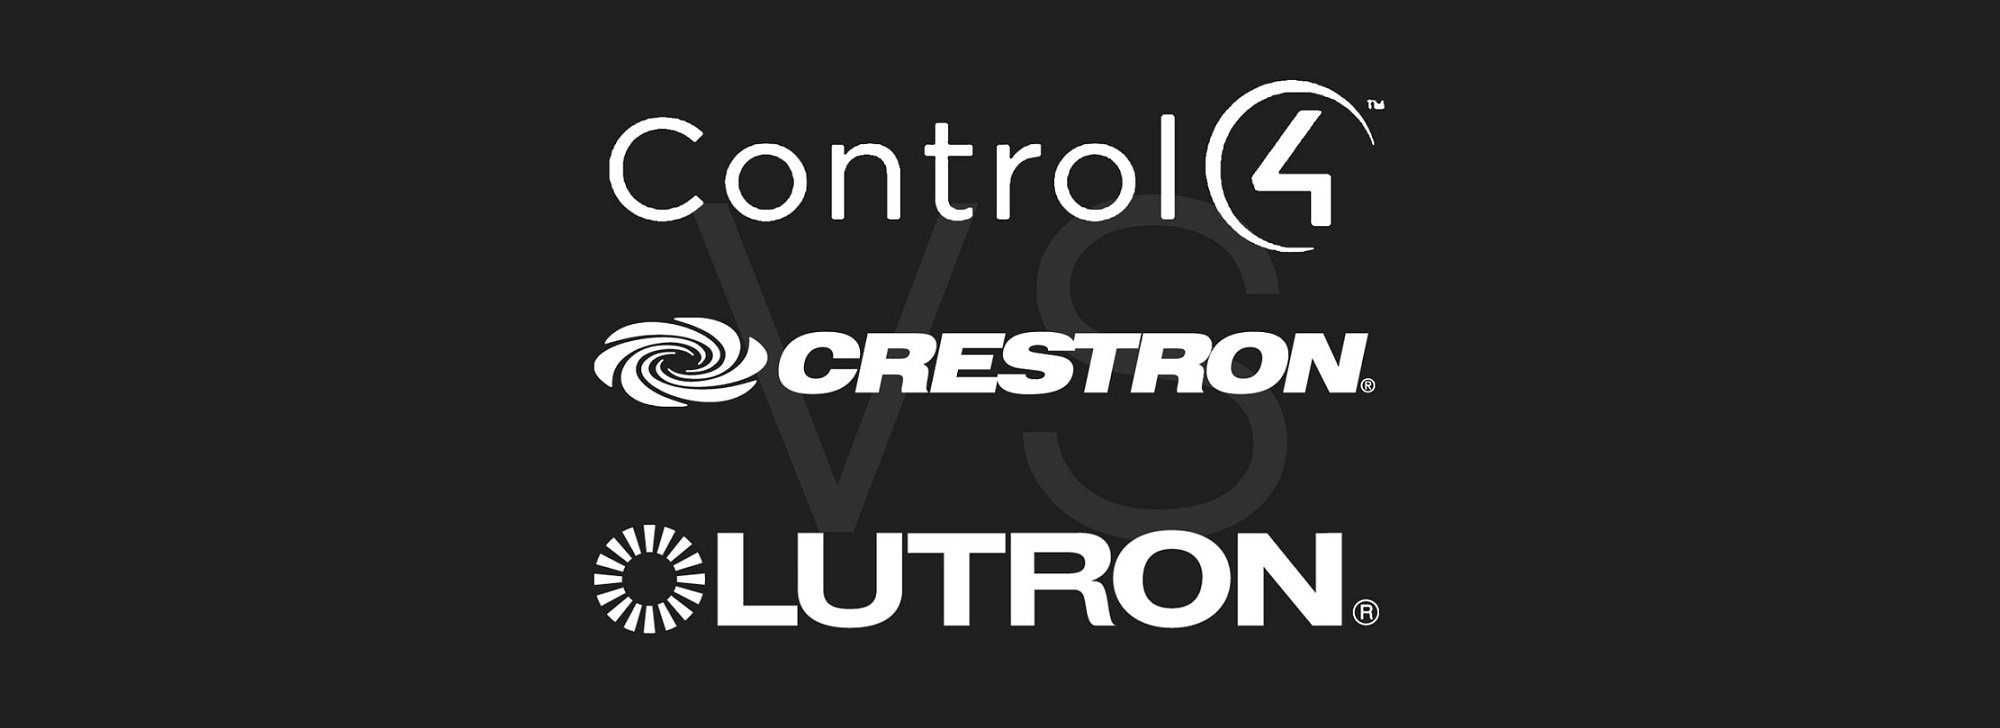 Crestron-Home-Automation-System-copy-1 Crestron Home Automation Trends 2018